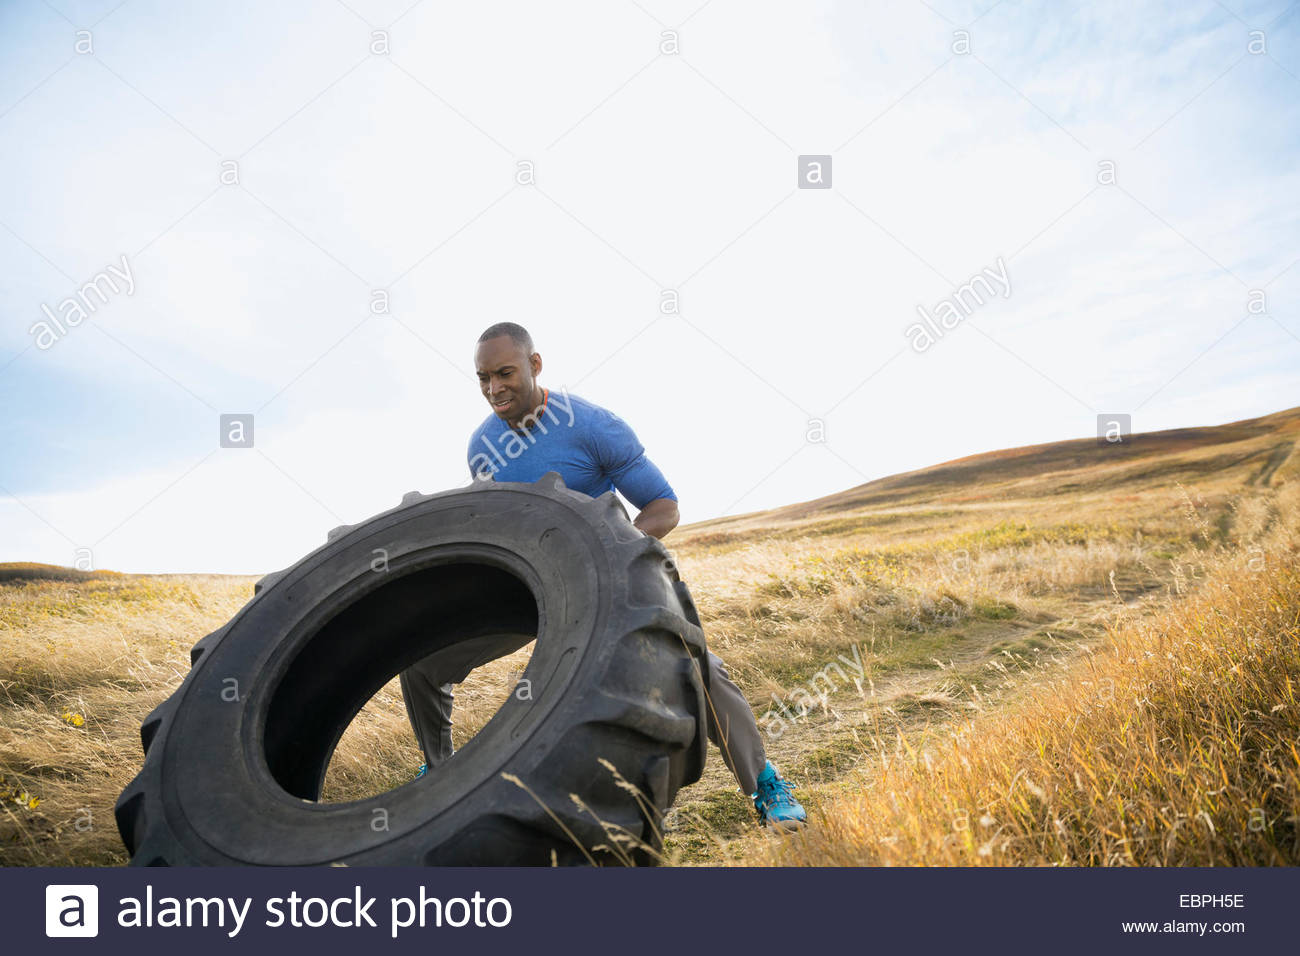 Man flipping crossfit tire in sunny rural field - Stock Image